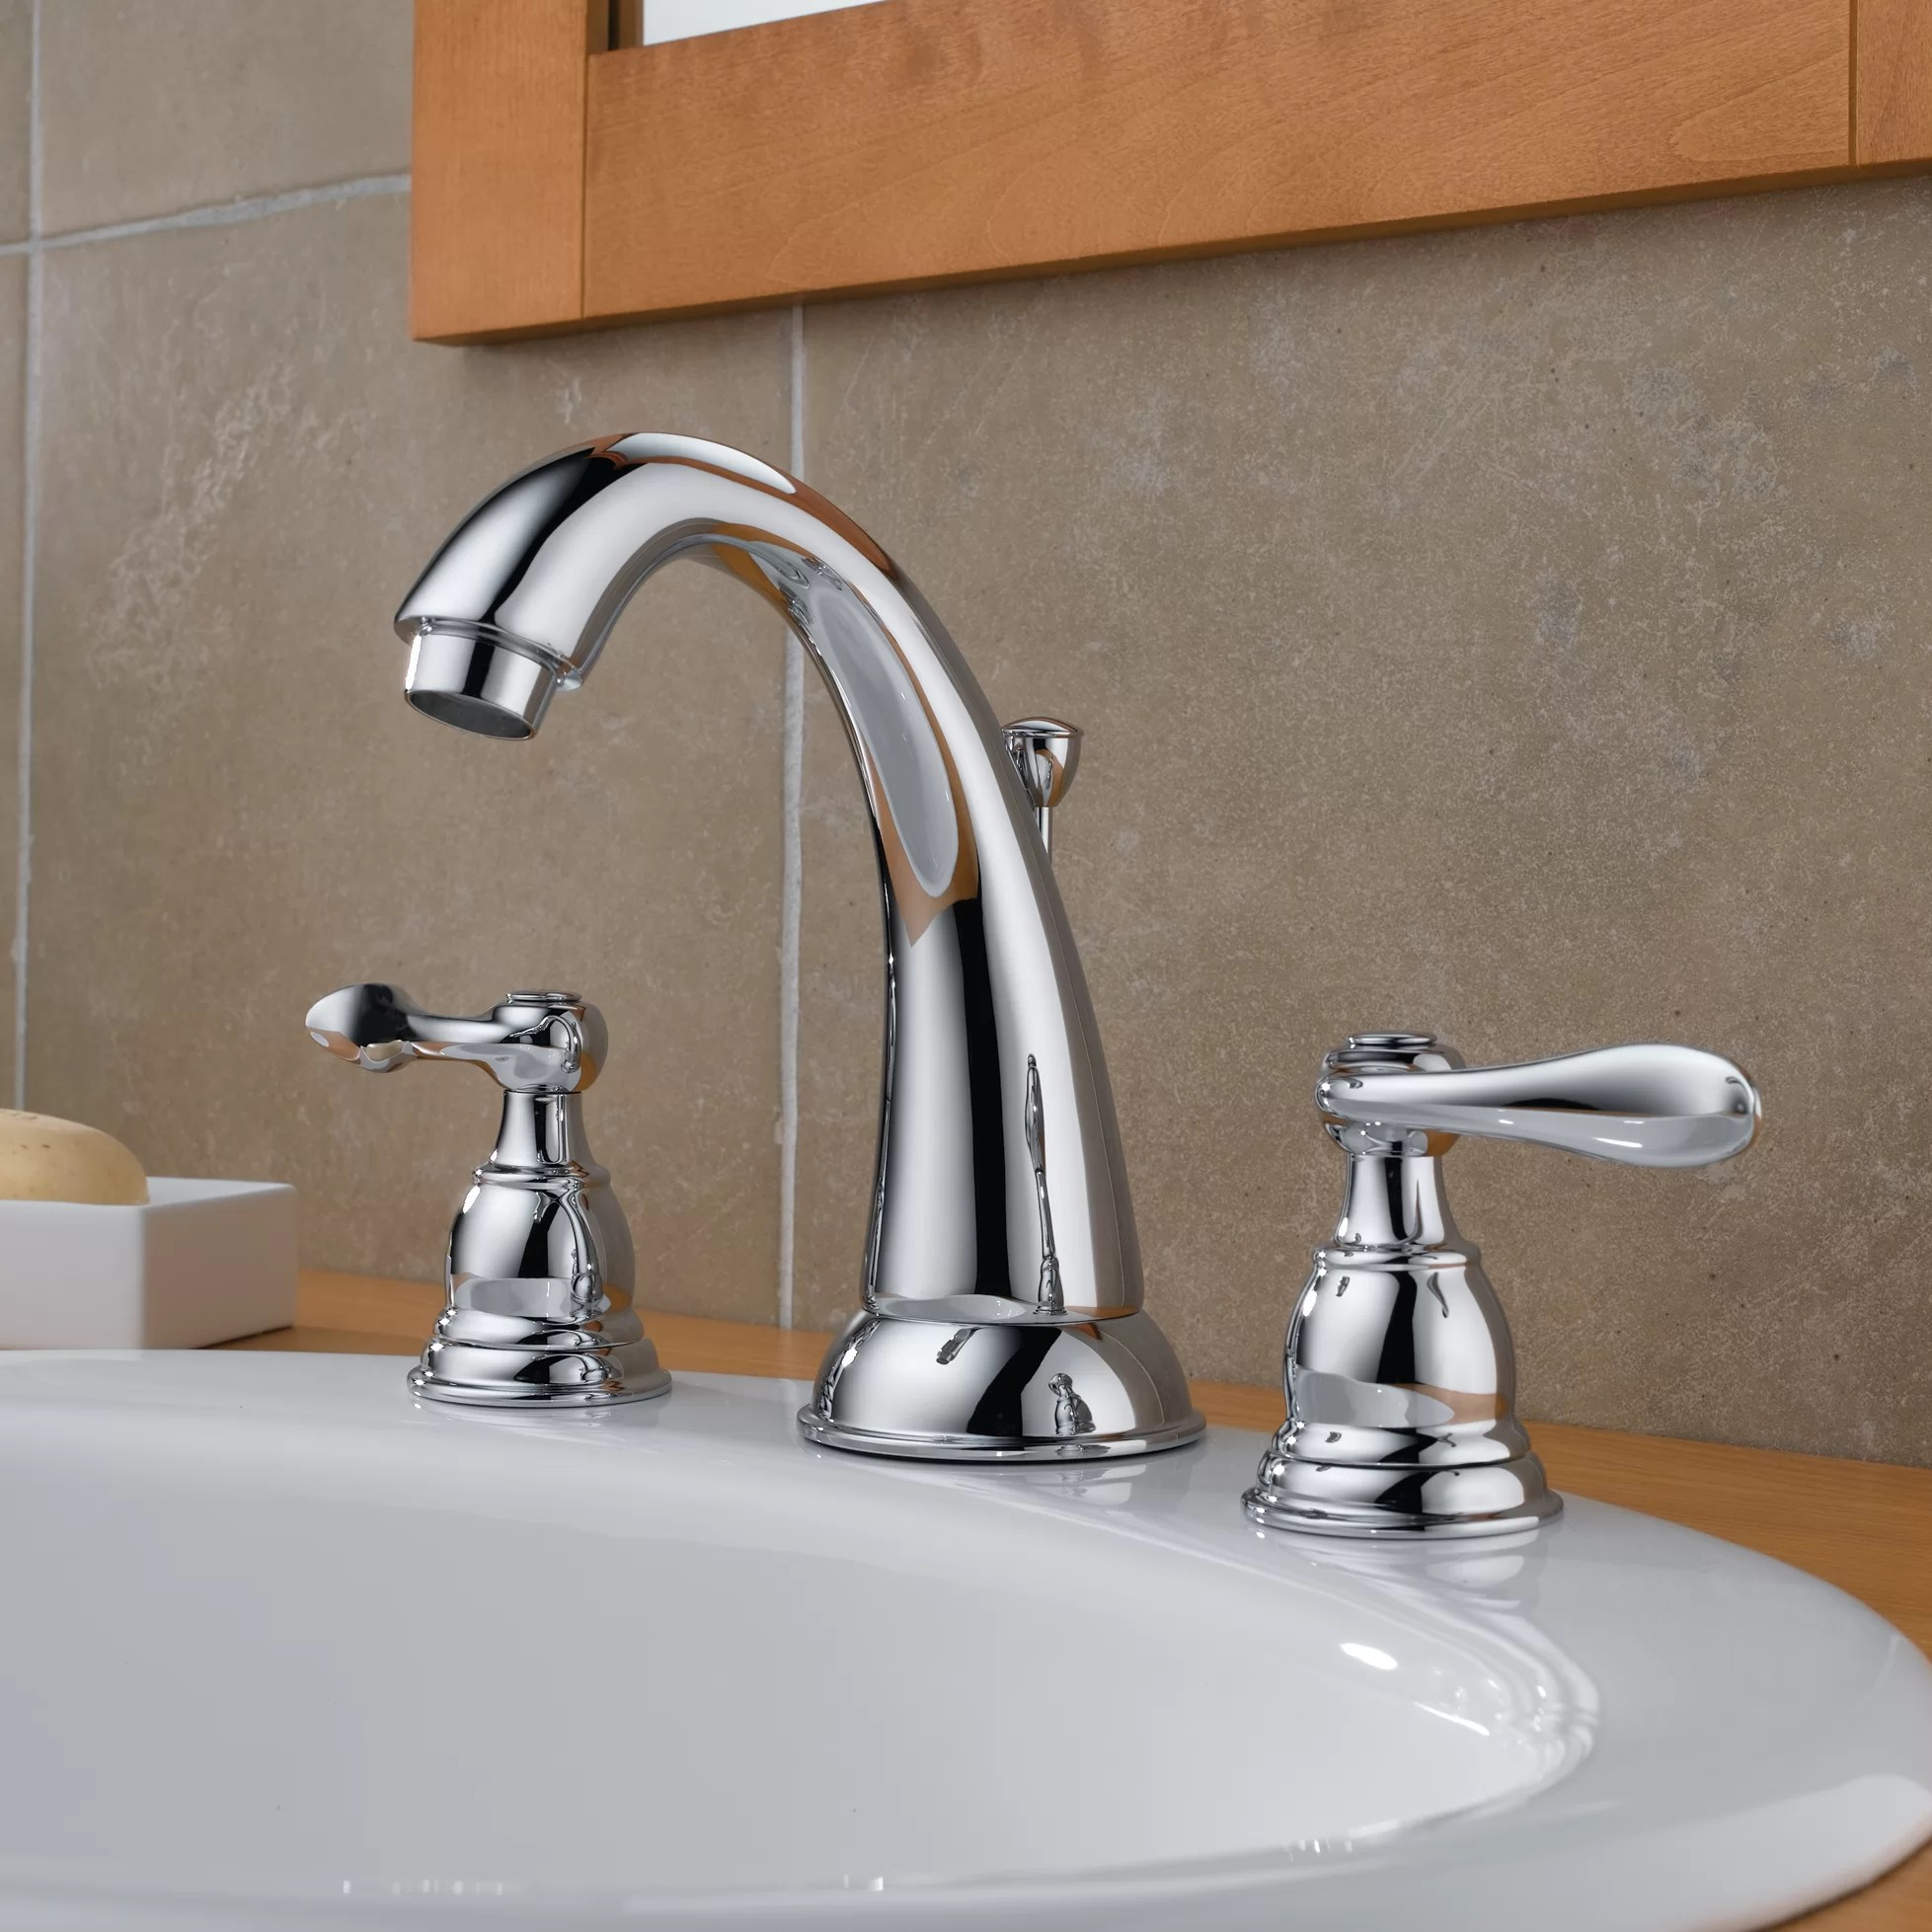 widespread kitchen faucet wolf ranges delta windemere bathroom with double